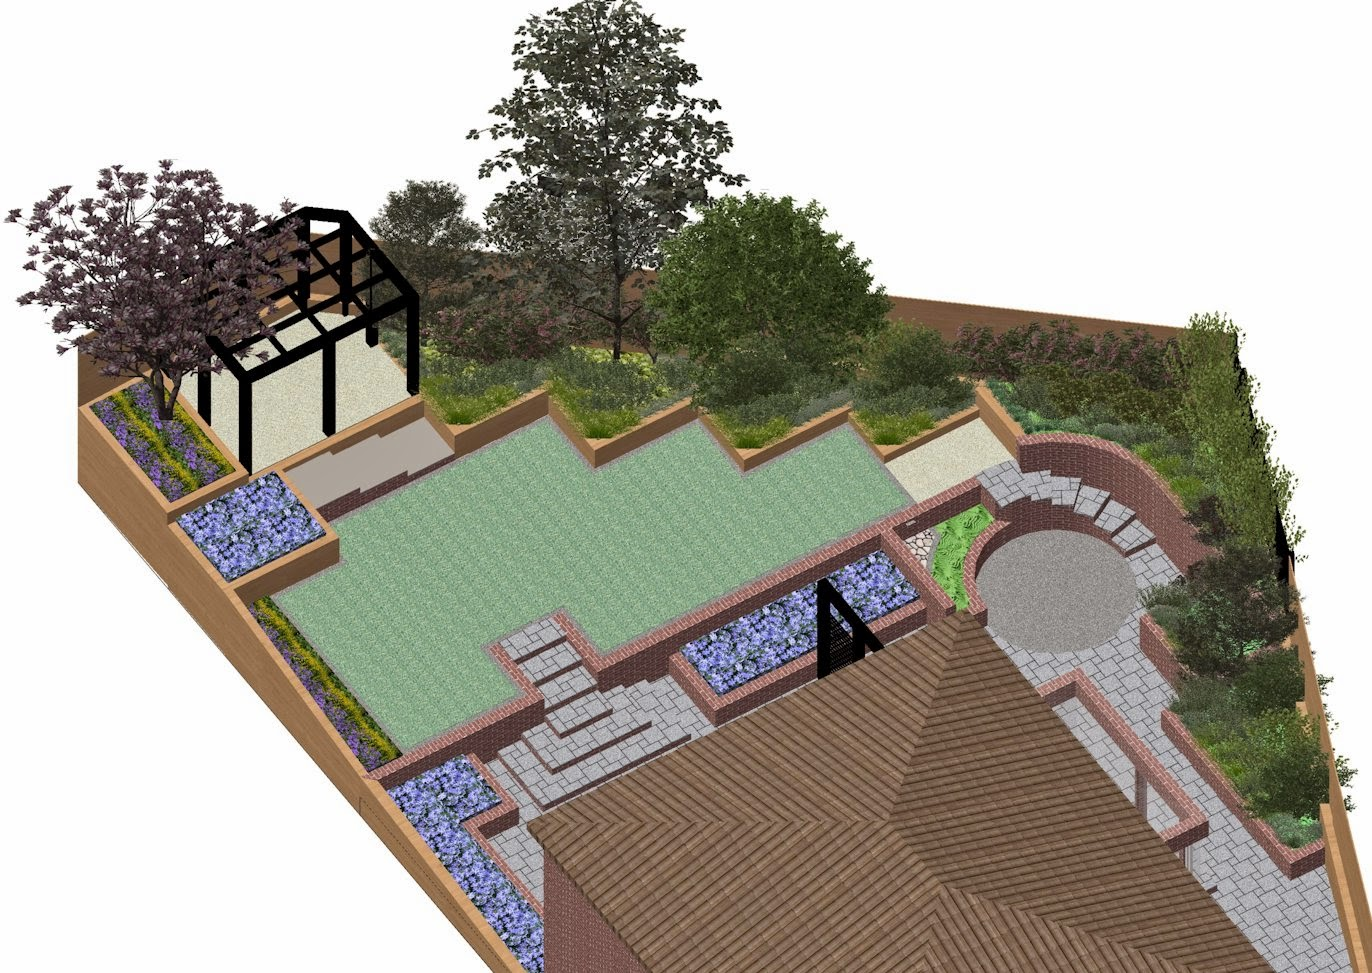 A Life Designing: How to design a sloping garden - Part 1 ... on Sloping Gardens Design Ideas id=13504